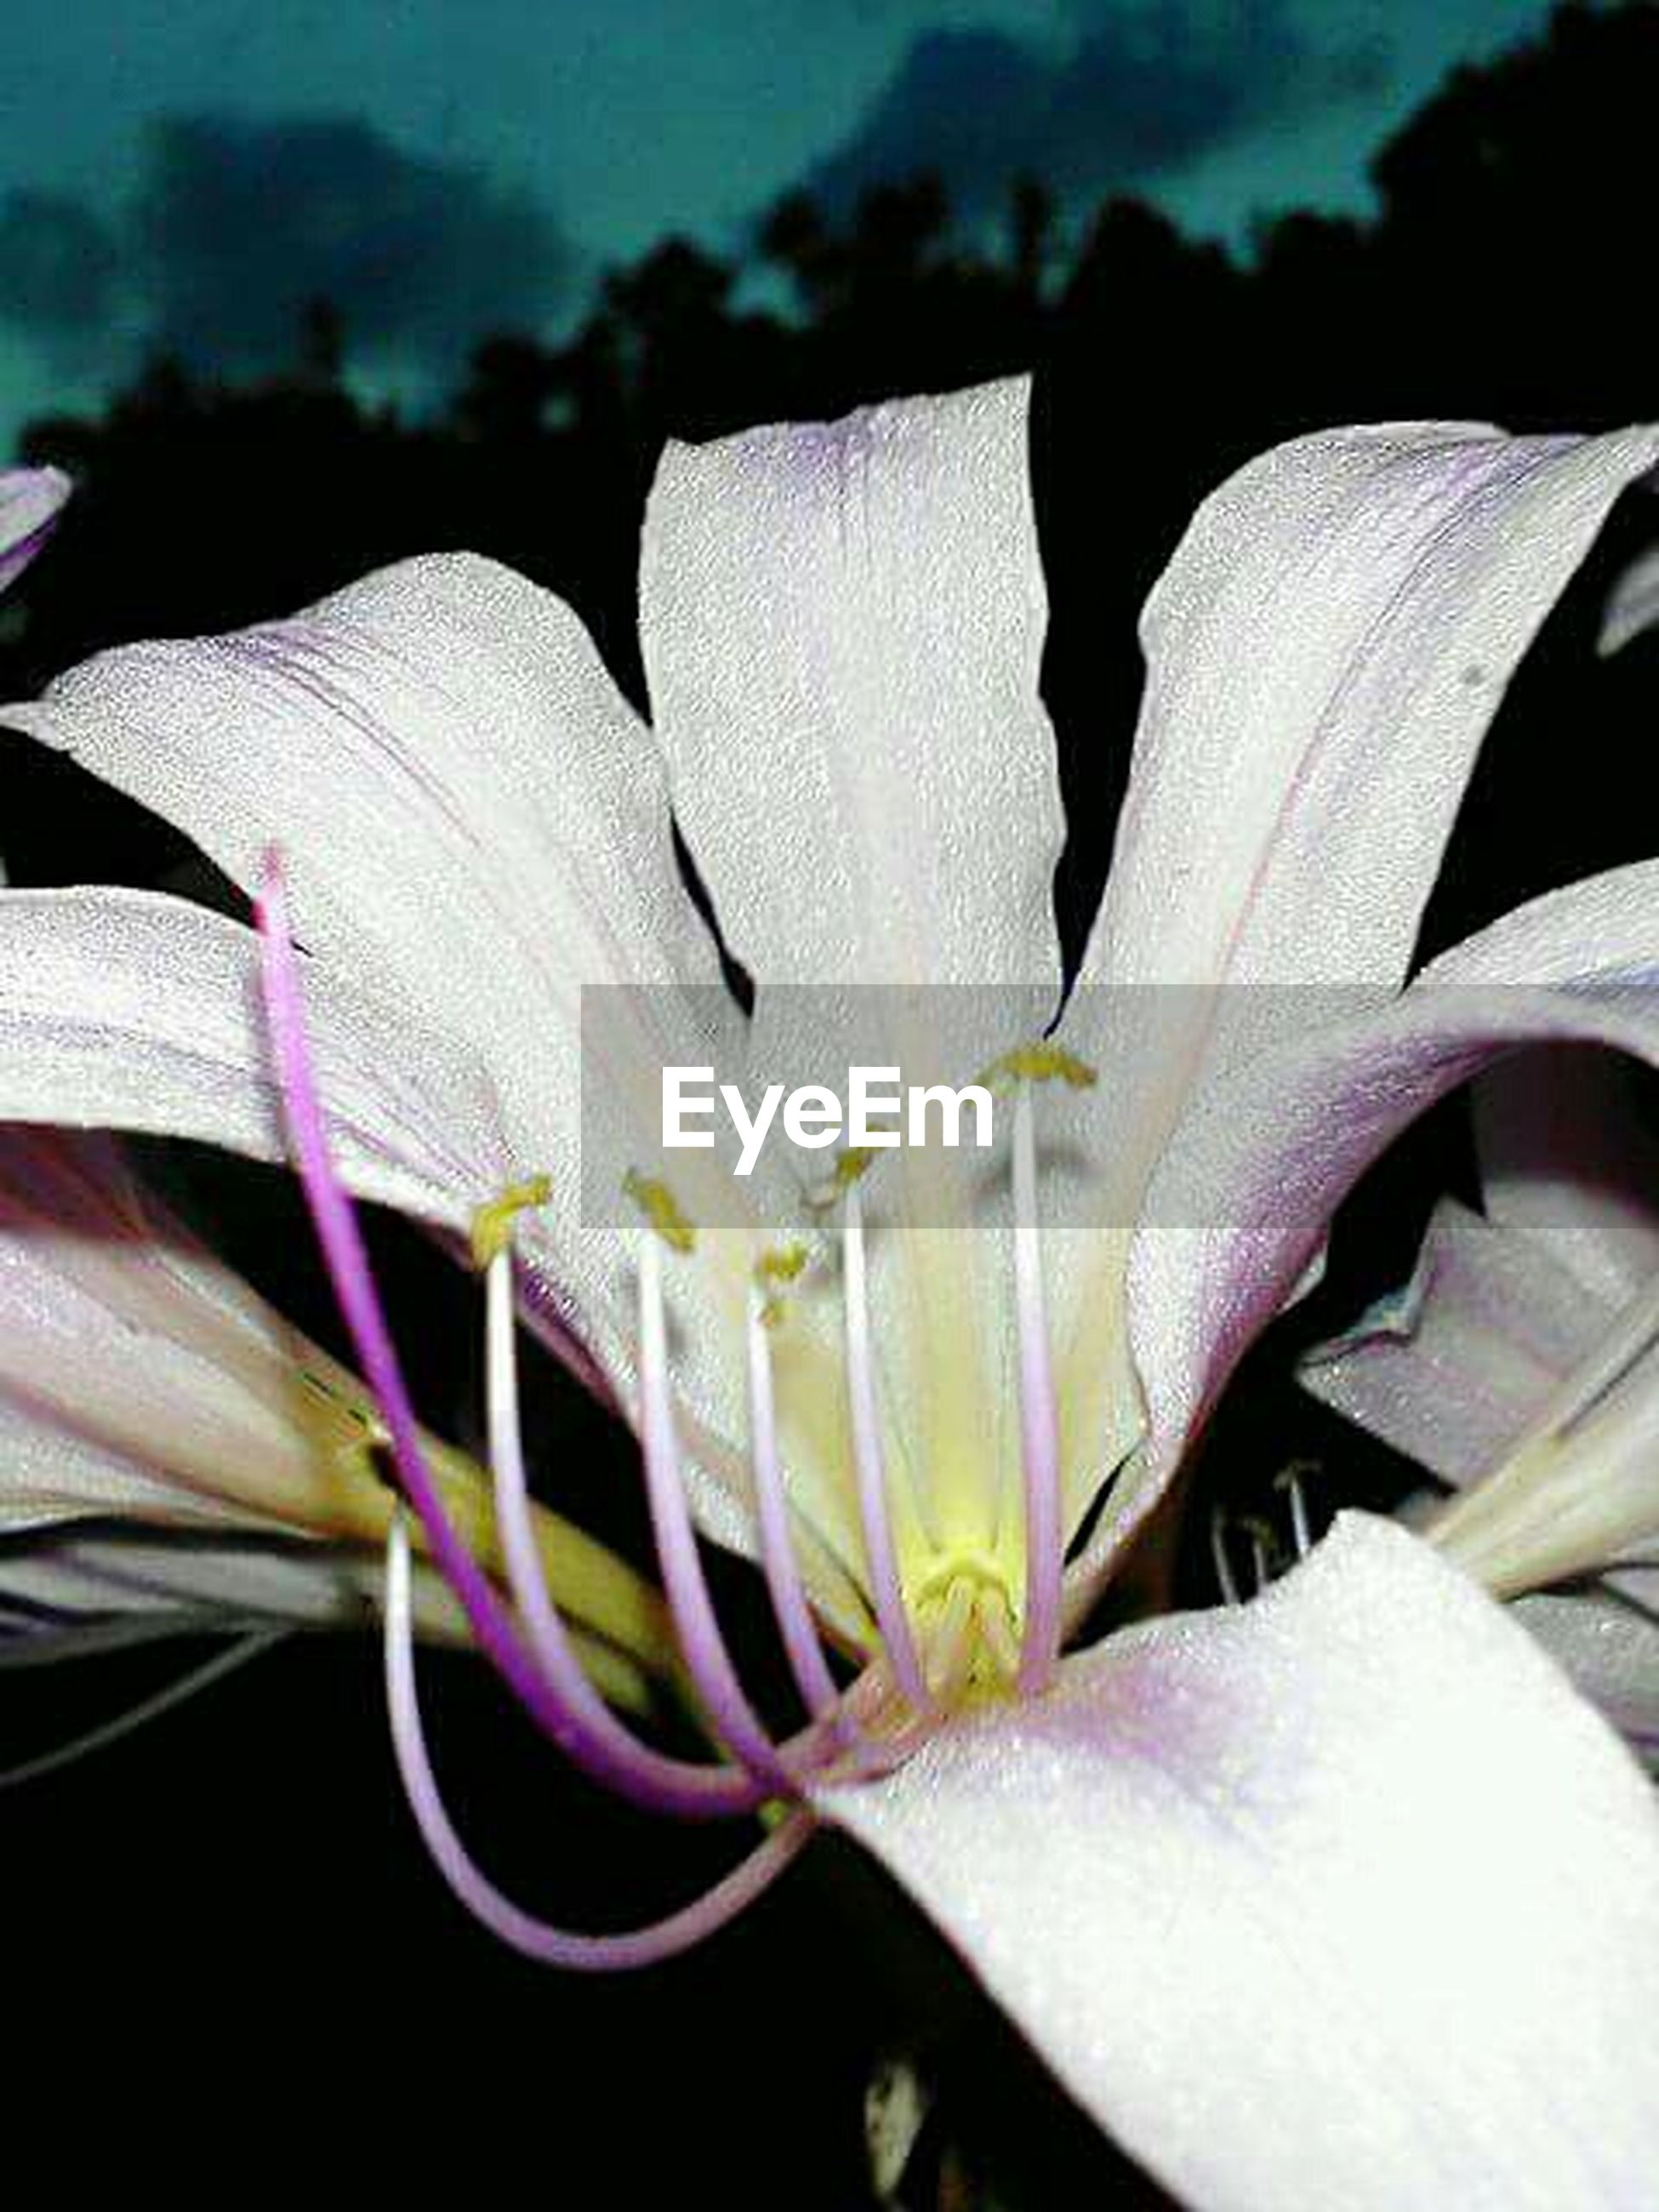 close-up, white color, creativity, focus on foreground, petal, pattern, flower, art and craft, design, art, flower head, single flower, no people, fragility, white, detail, nature, beauty in nature, part of, outdoors